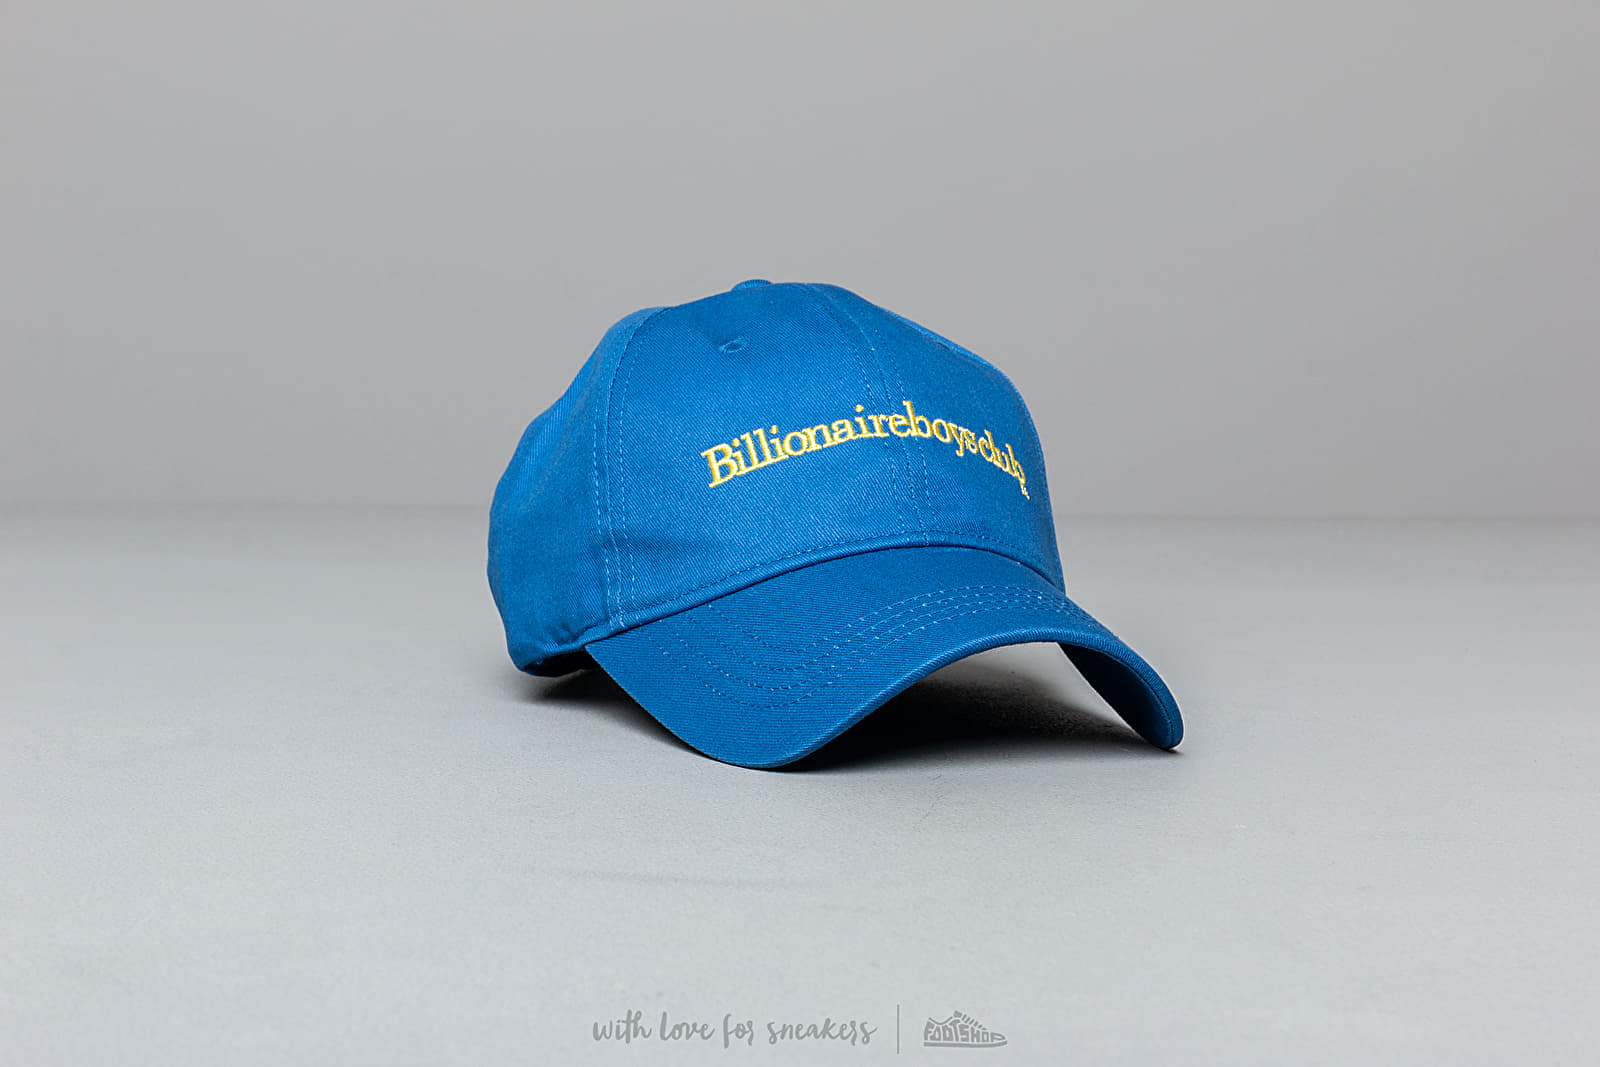 Billionaire Boys Club Embroidered Curved Visor Cap Blue